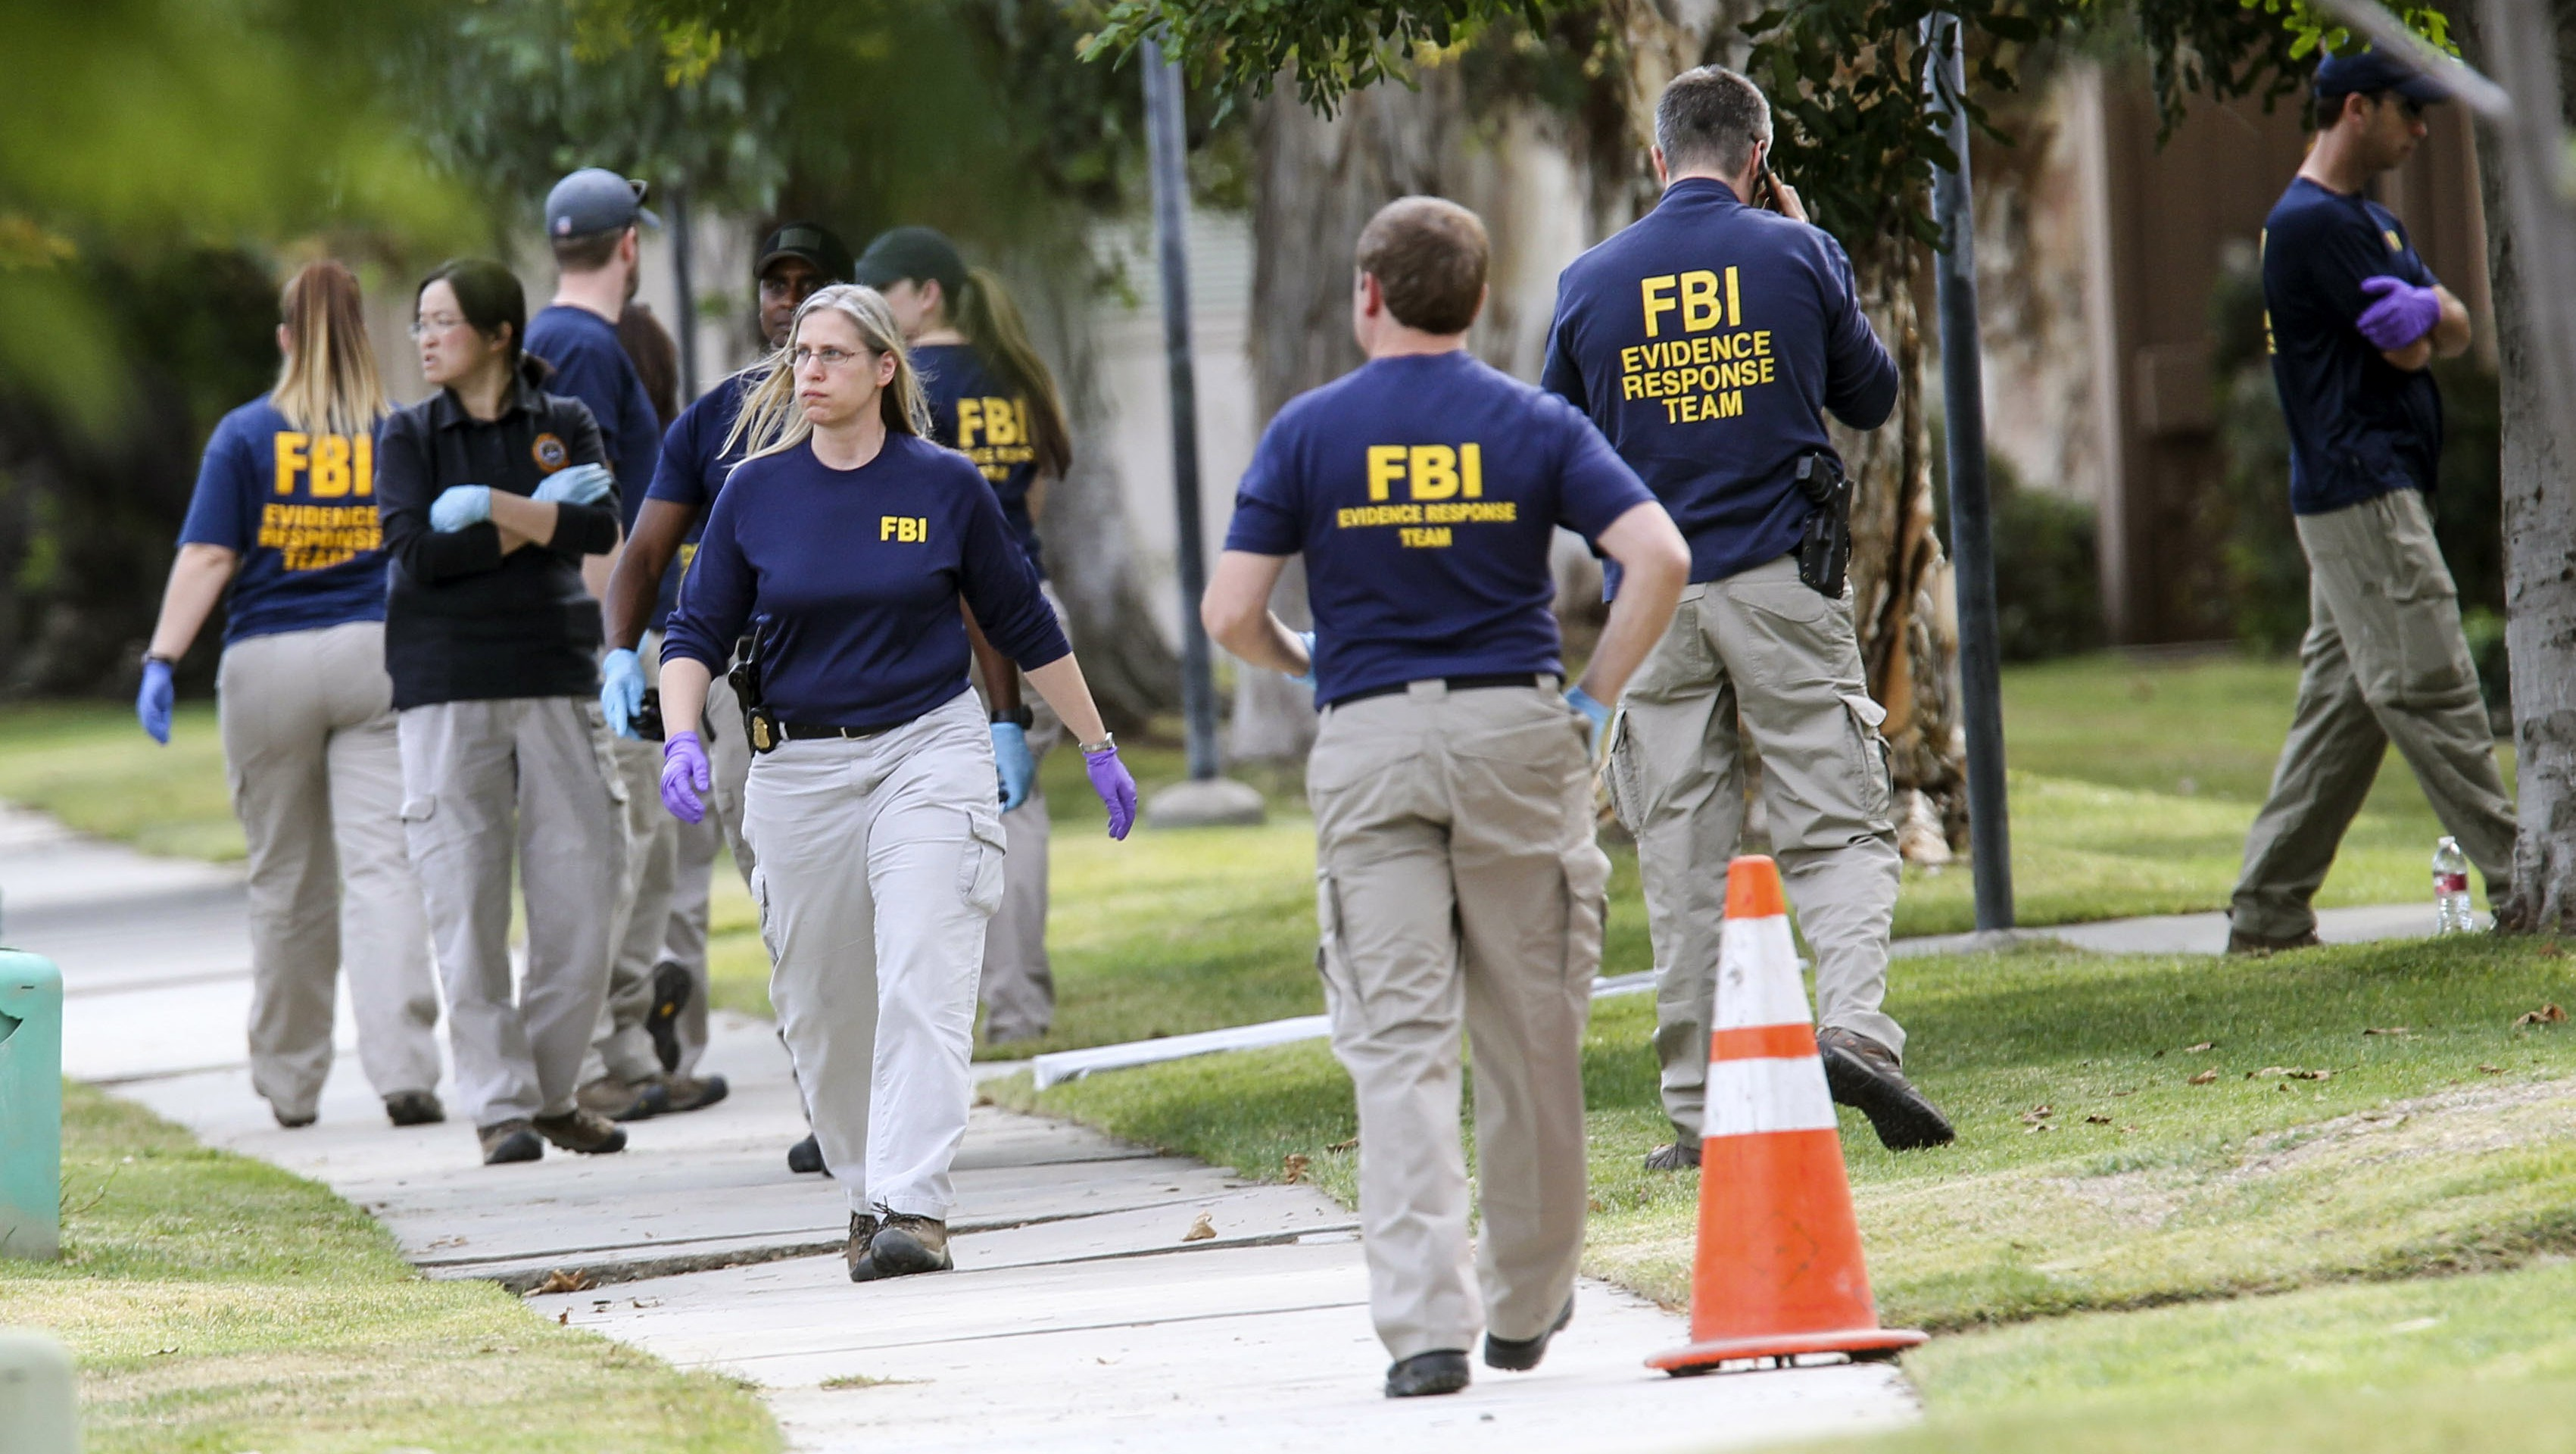 FBI agents search outside a home in connection to the shootings in San Bernardino, Thursday, Dec. 3, 2015, in Redlands, Calif. A heavily armed man and woman opened fire Wednesday on a holiday banquet for his co-workers, killing multiple people and seriously wounding others in a precision assault, authorities said. Hours later, they died in a shootout with police